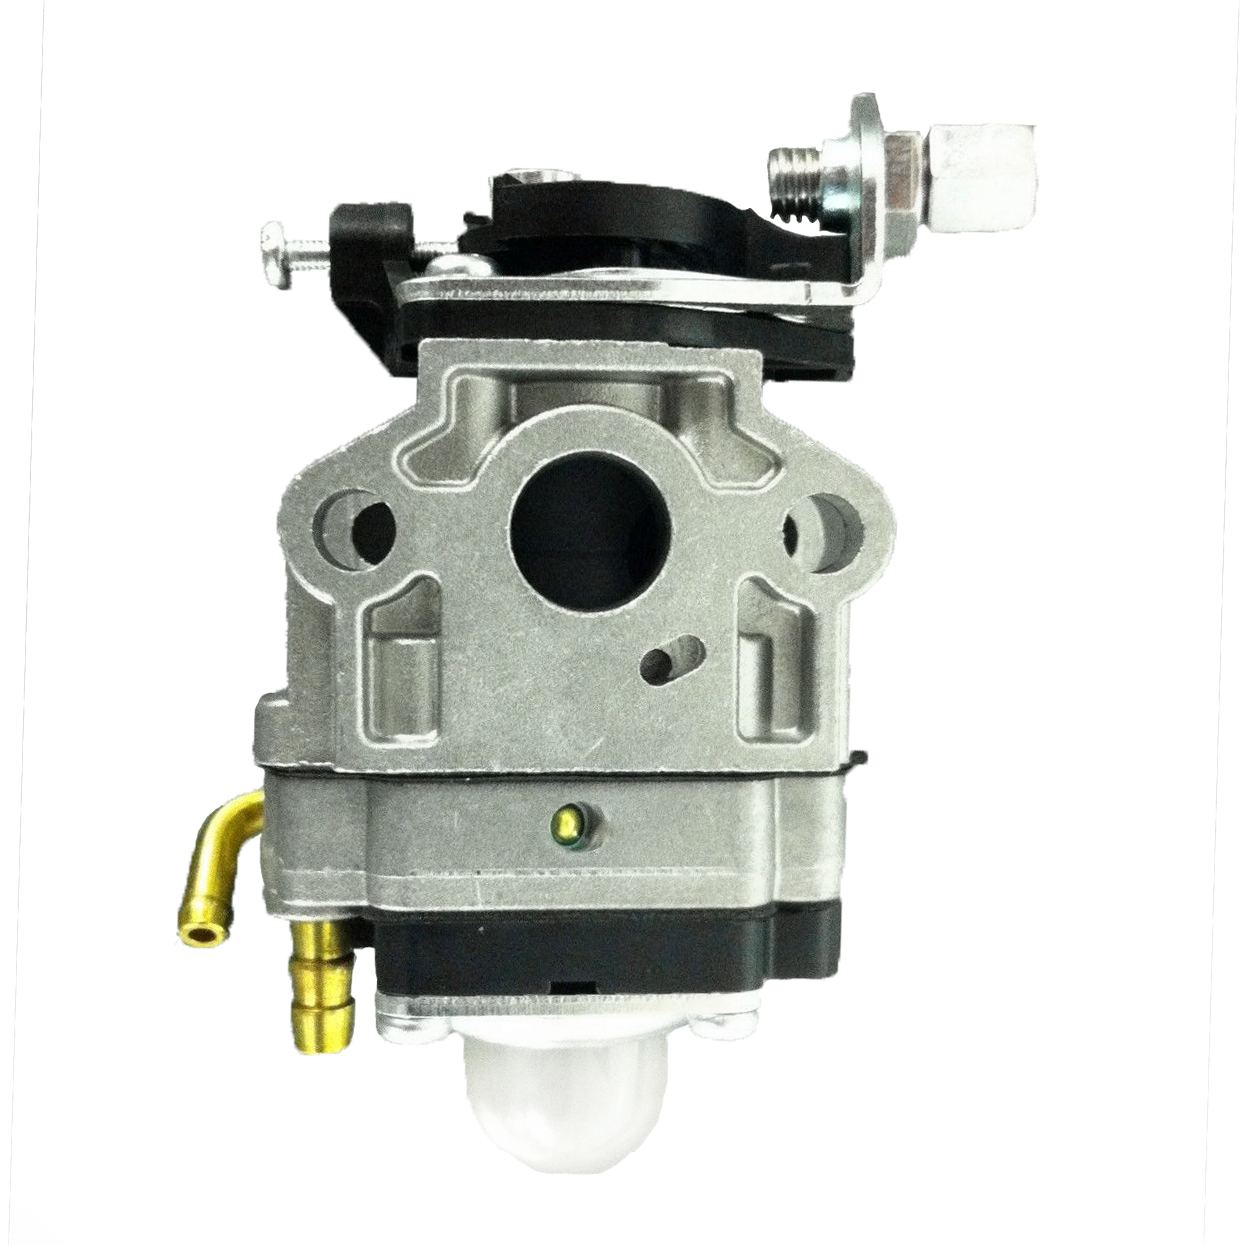 Walbro Carburetor WYJ-175-1 for Kawasaki TF22DVX Hedge Trimmer